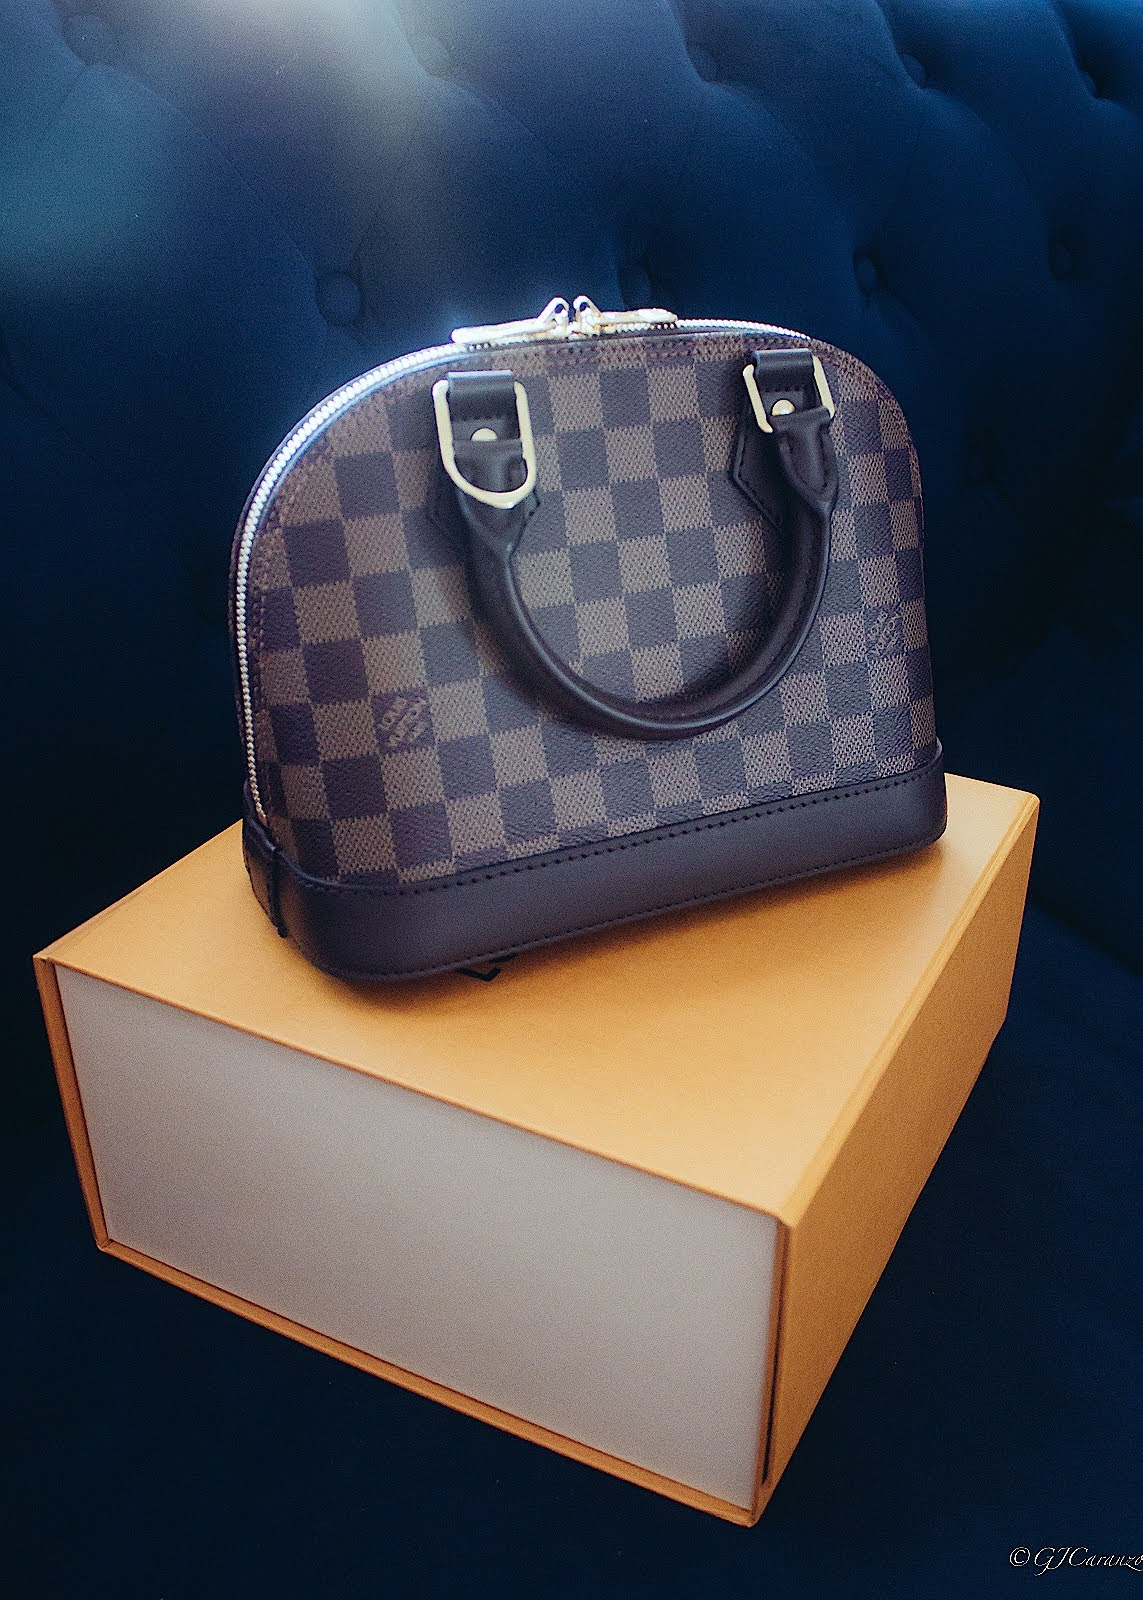 My first luxury bag the Louis Vuitton Alma BB